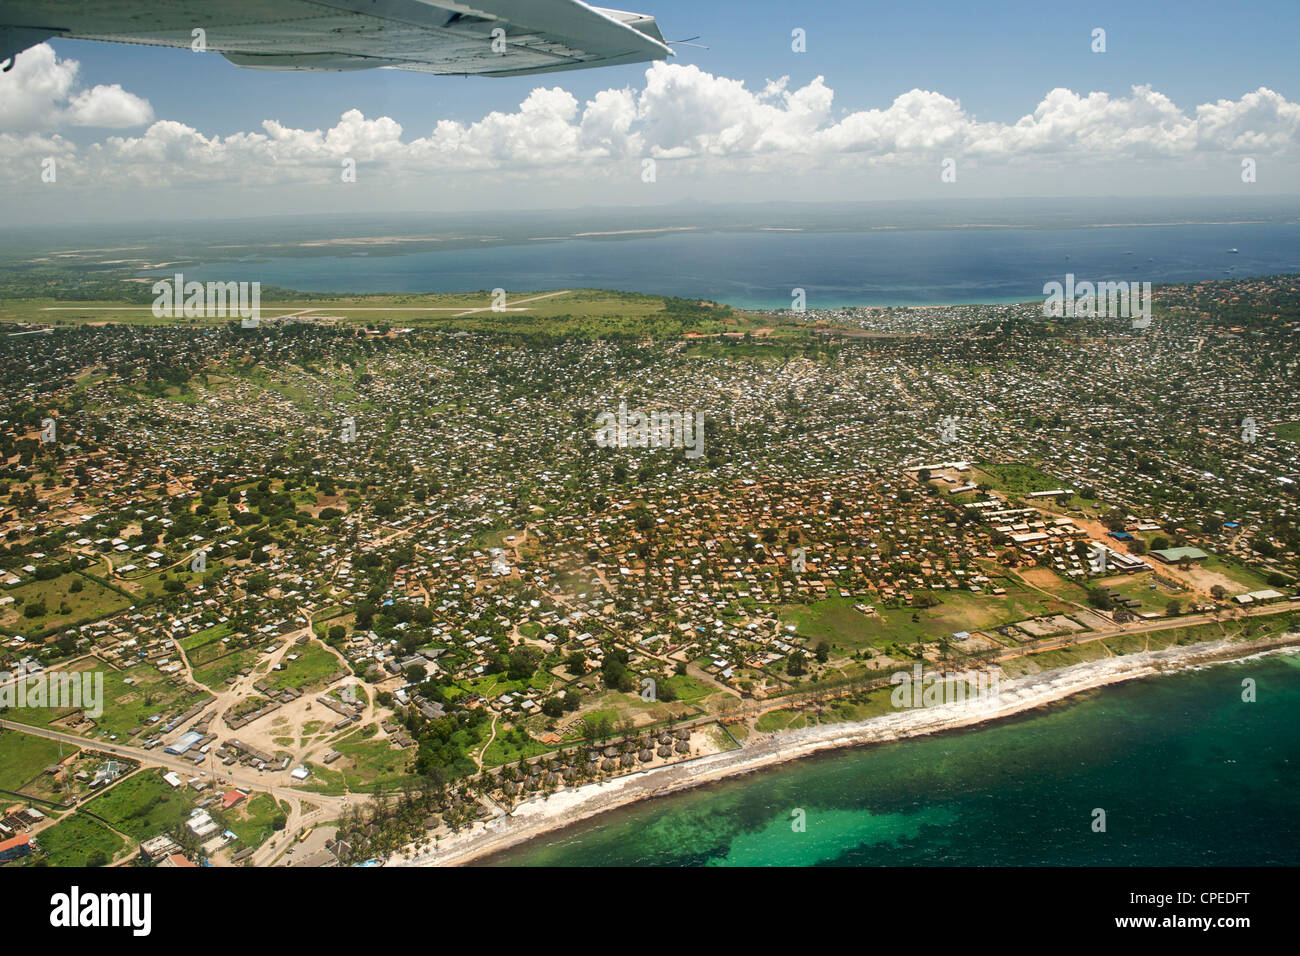 Aerial view of Pemba in northern Mozambique. - Stock Image